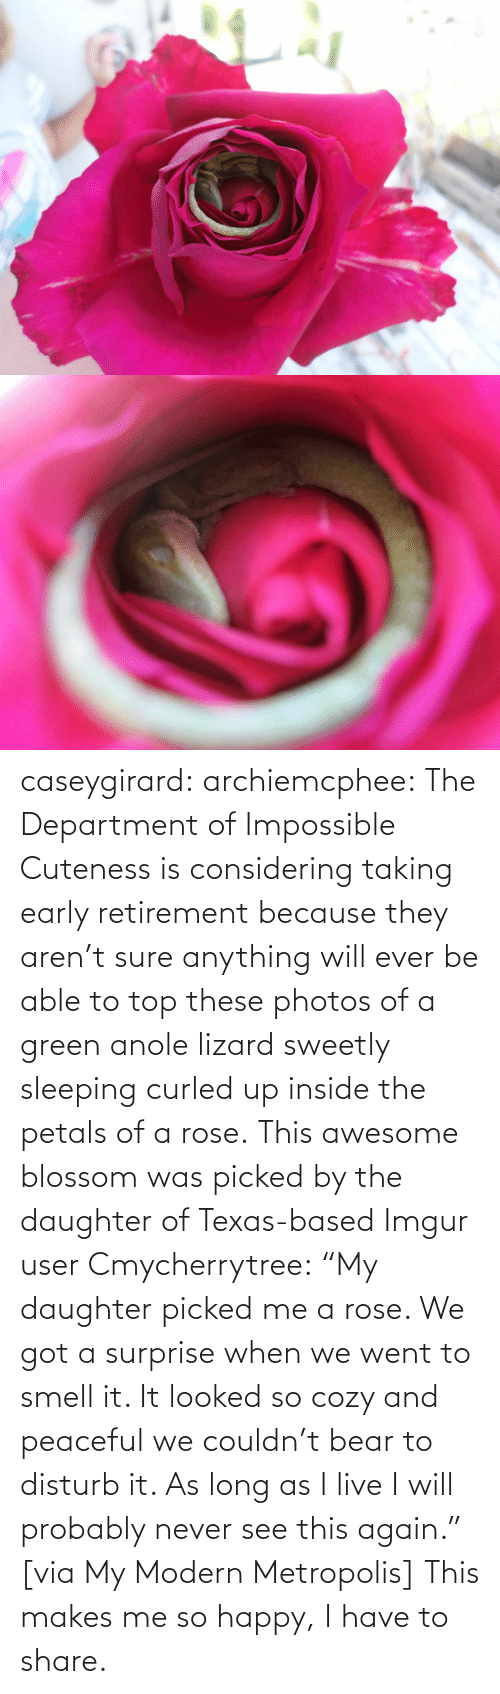 "Bear: caseygirard:  archiemcphee:   The Department of Impossible Cuteness is considering taking early retirement because they aren't sure anything will ever be able to top these photos of a green anole lizard sweetly sleeping curled up inside the petals of a rose. This awesome blossom was picked by the daughter of Texas-based Imgur user Cmycherrytree: ""My daughter picked me a rose. We got a surprise when we went to smell it. It looked so cozy and peaceful we couldn't bear to disturb it. As long as I live I will probably never see this again."" [via My Modern Metropolis]   This makes me so happy, I have to share."